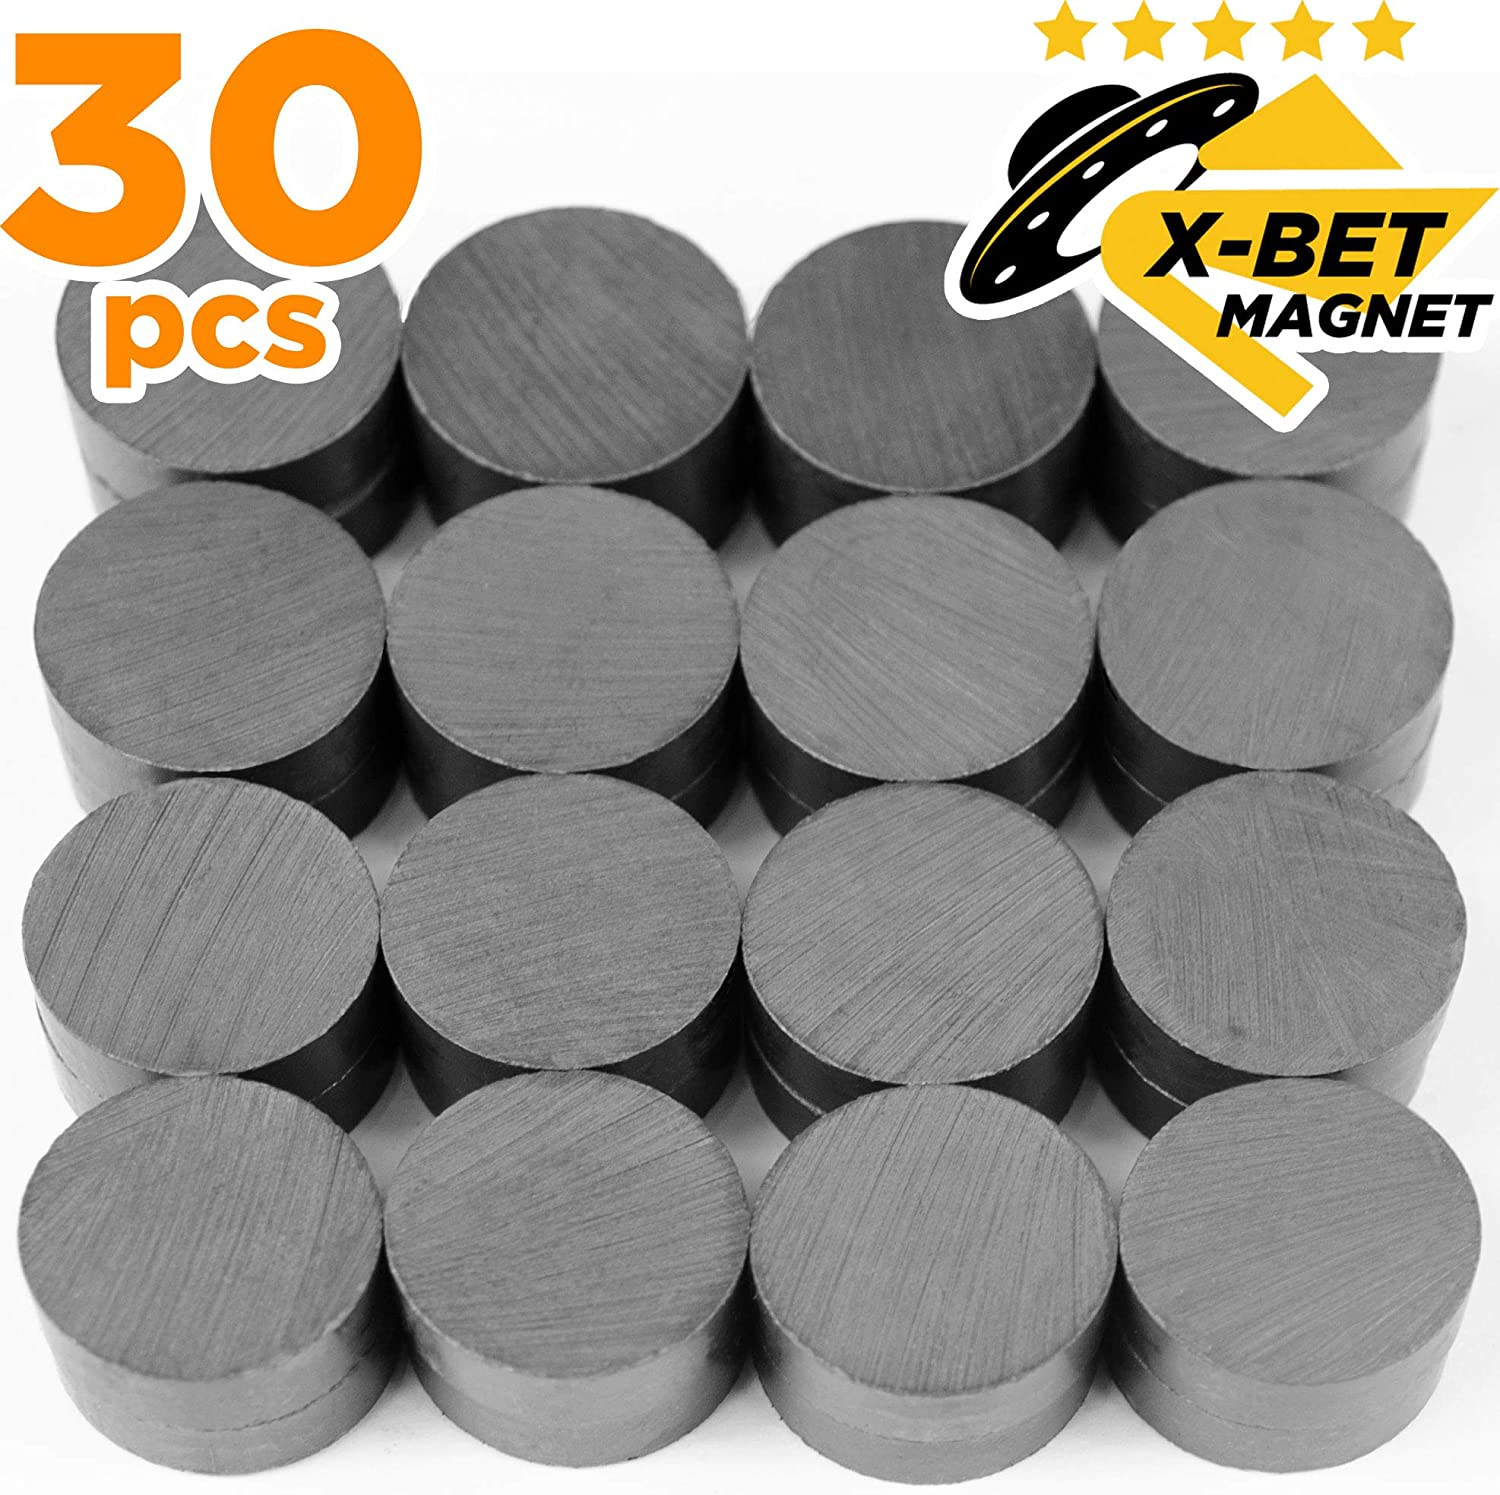 Craft Magnets - 18 mm (.709 inch) Round Disc Ceramic Magnets - Flat Circle Magnets for Crafts, Science & DIY - Ferrite Small Magnets Perfect for Refrigerator, Whiteboard, Fridge - 30 PCs